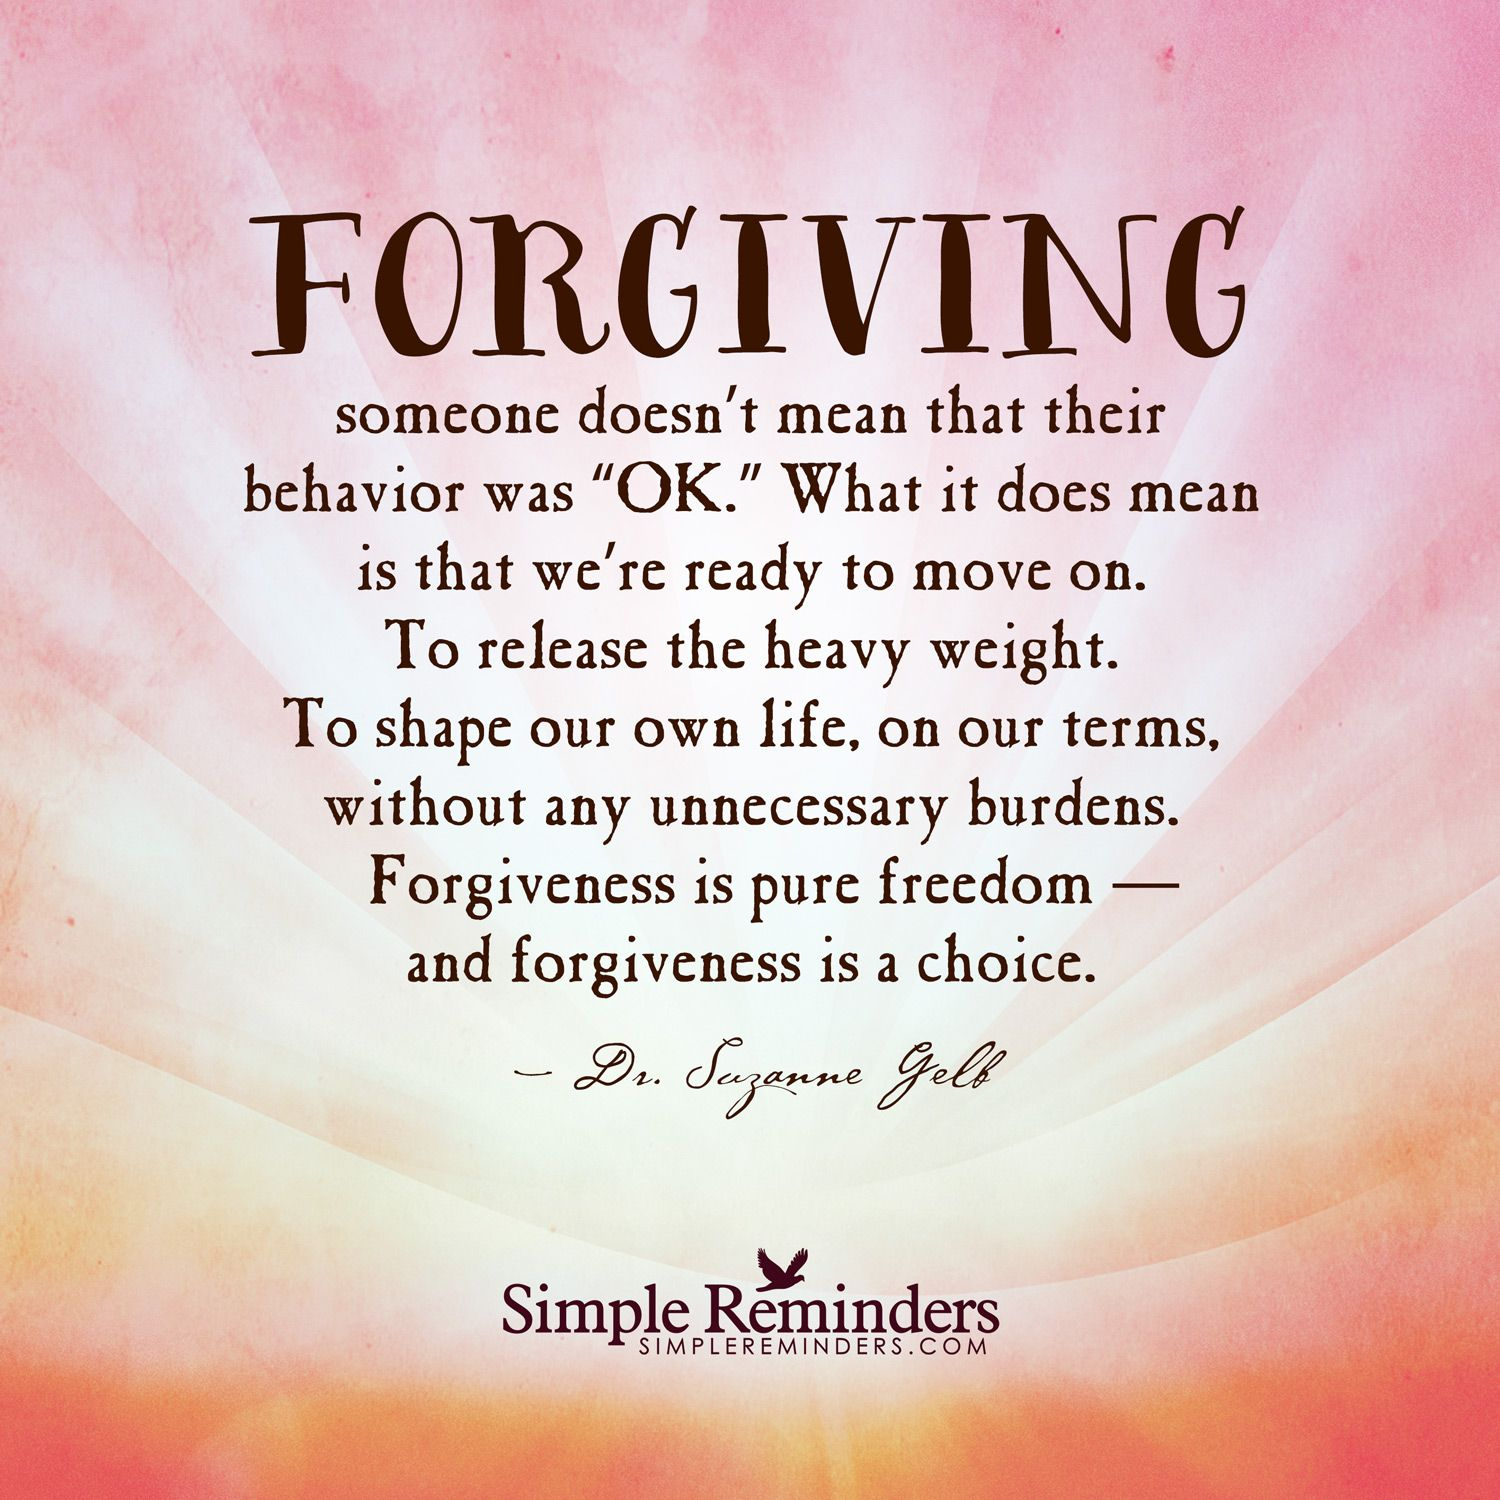 Forgiving Someone Doesn't Mean That Their Behavior Was OK